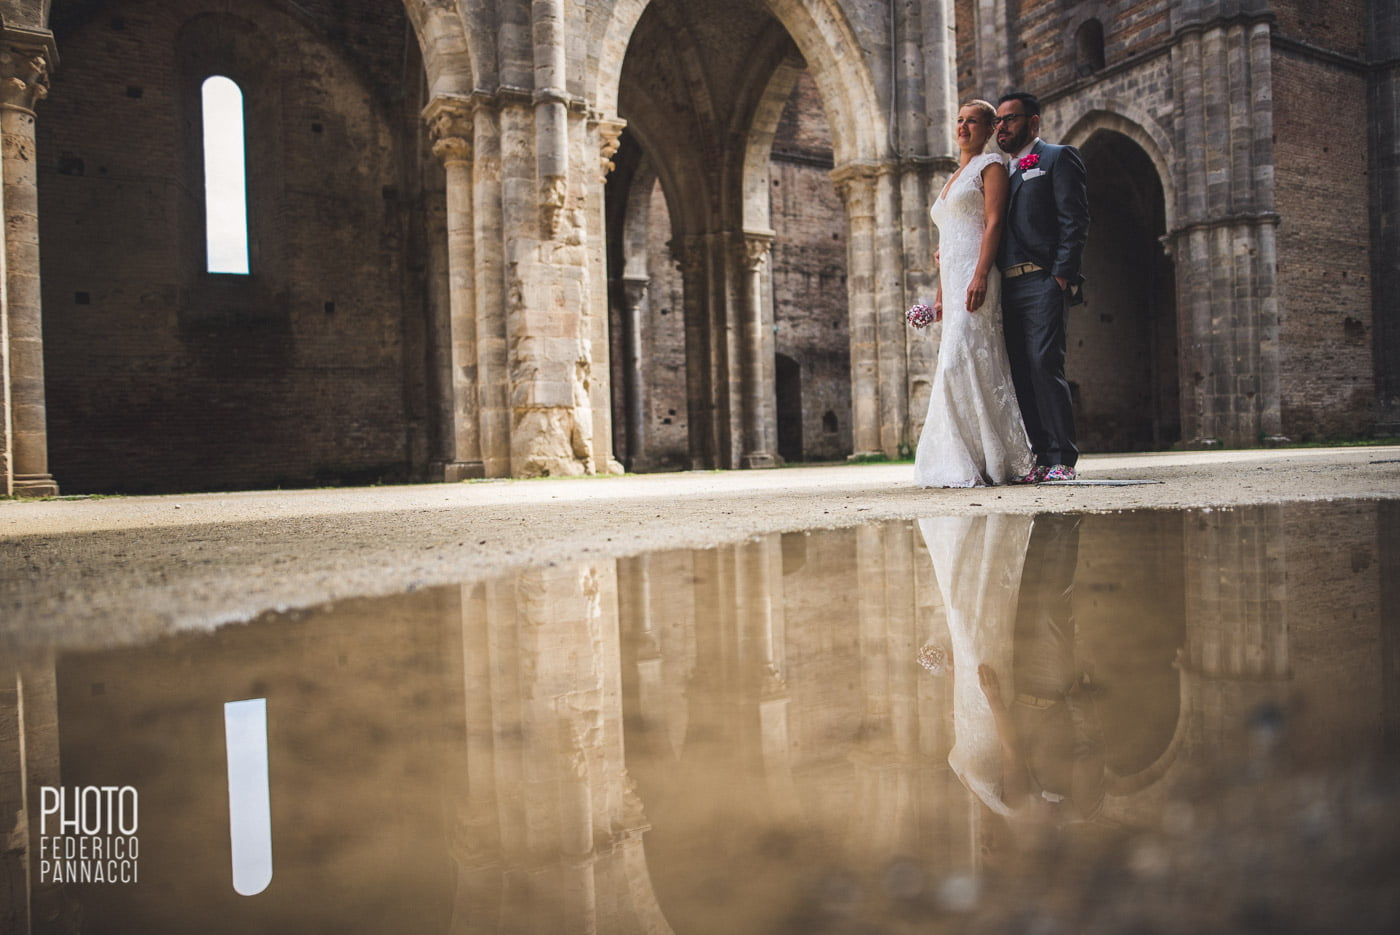 050-DestinationWedding-Sangalgano